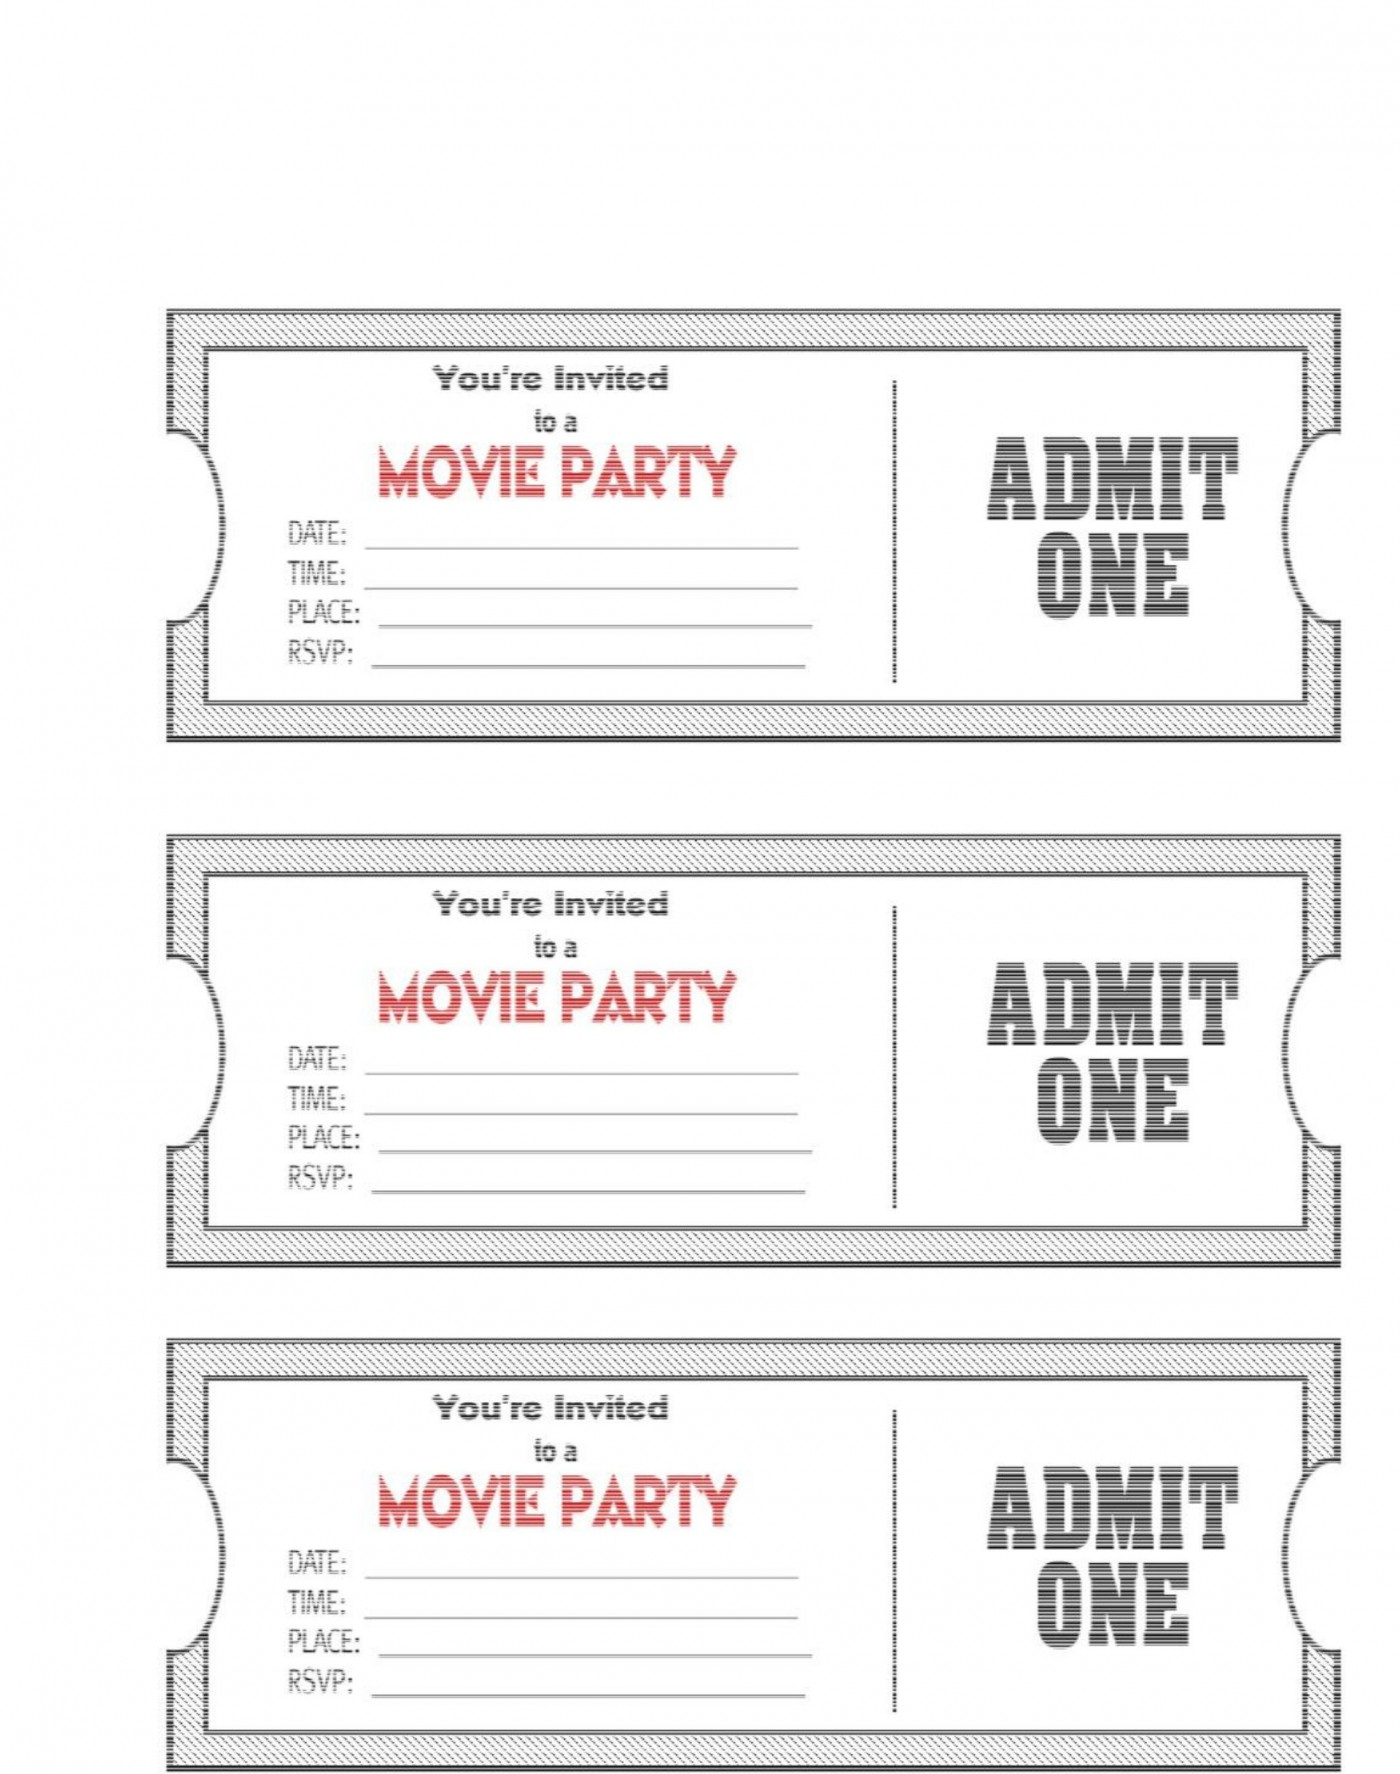 004 Phenomenal Editable Ticket Template Free Image  Concert Word Irctc Format Download Movie1400